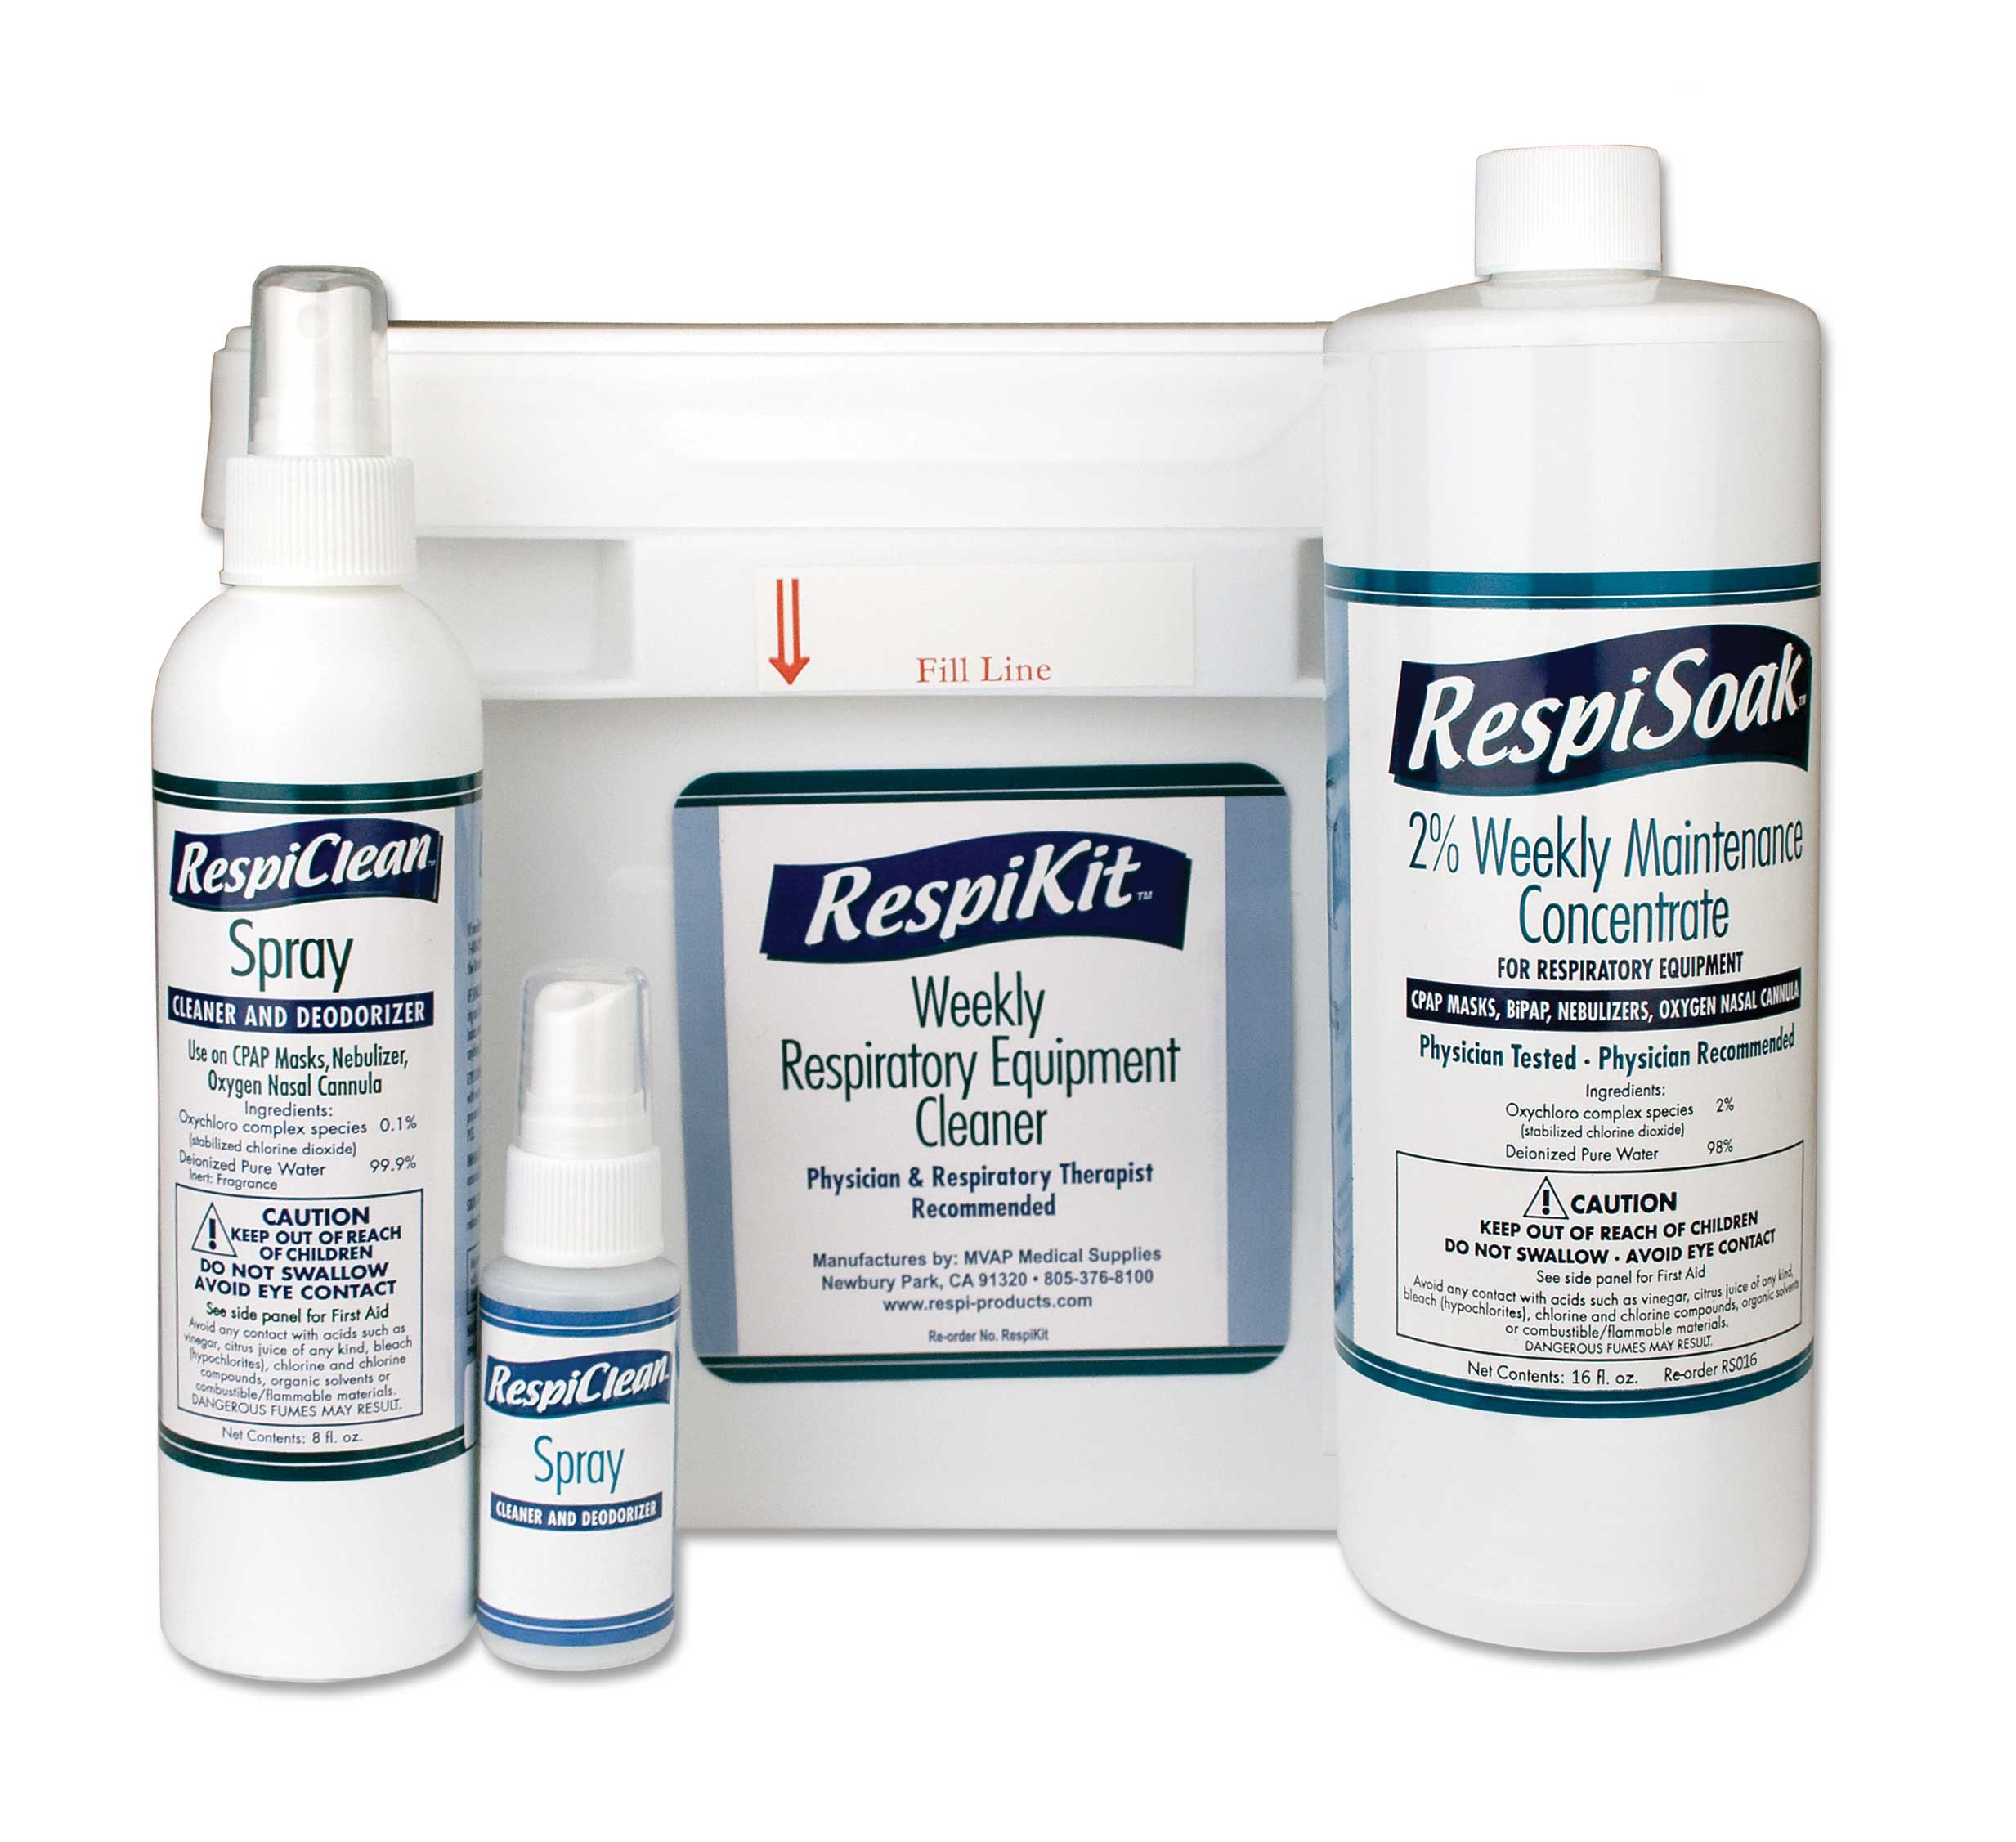 Respikit Respiratory Amp Cpap Equipment Cleaning Kit By Mvap